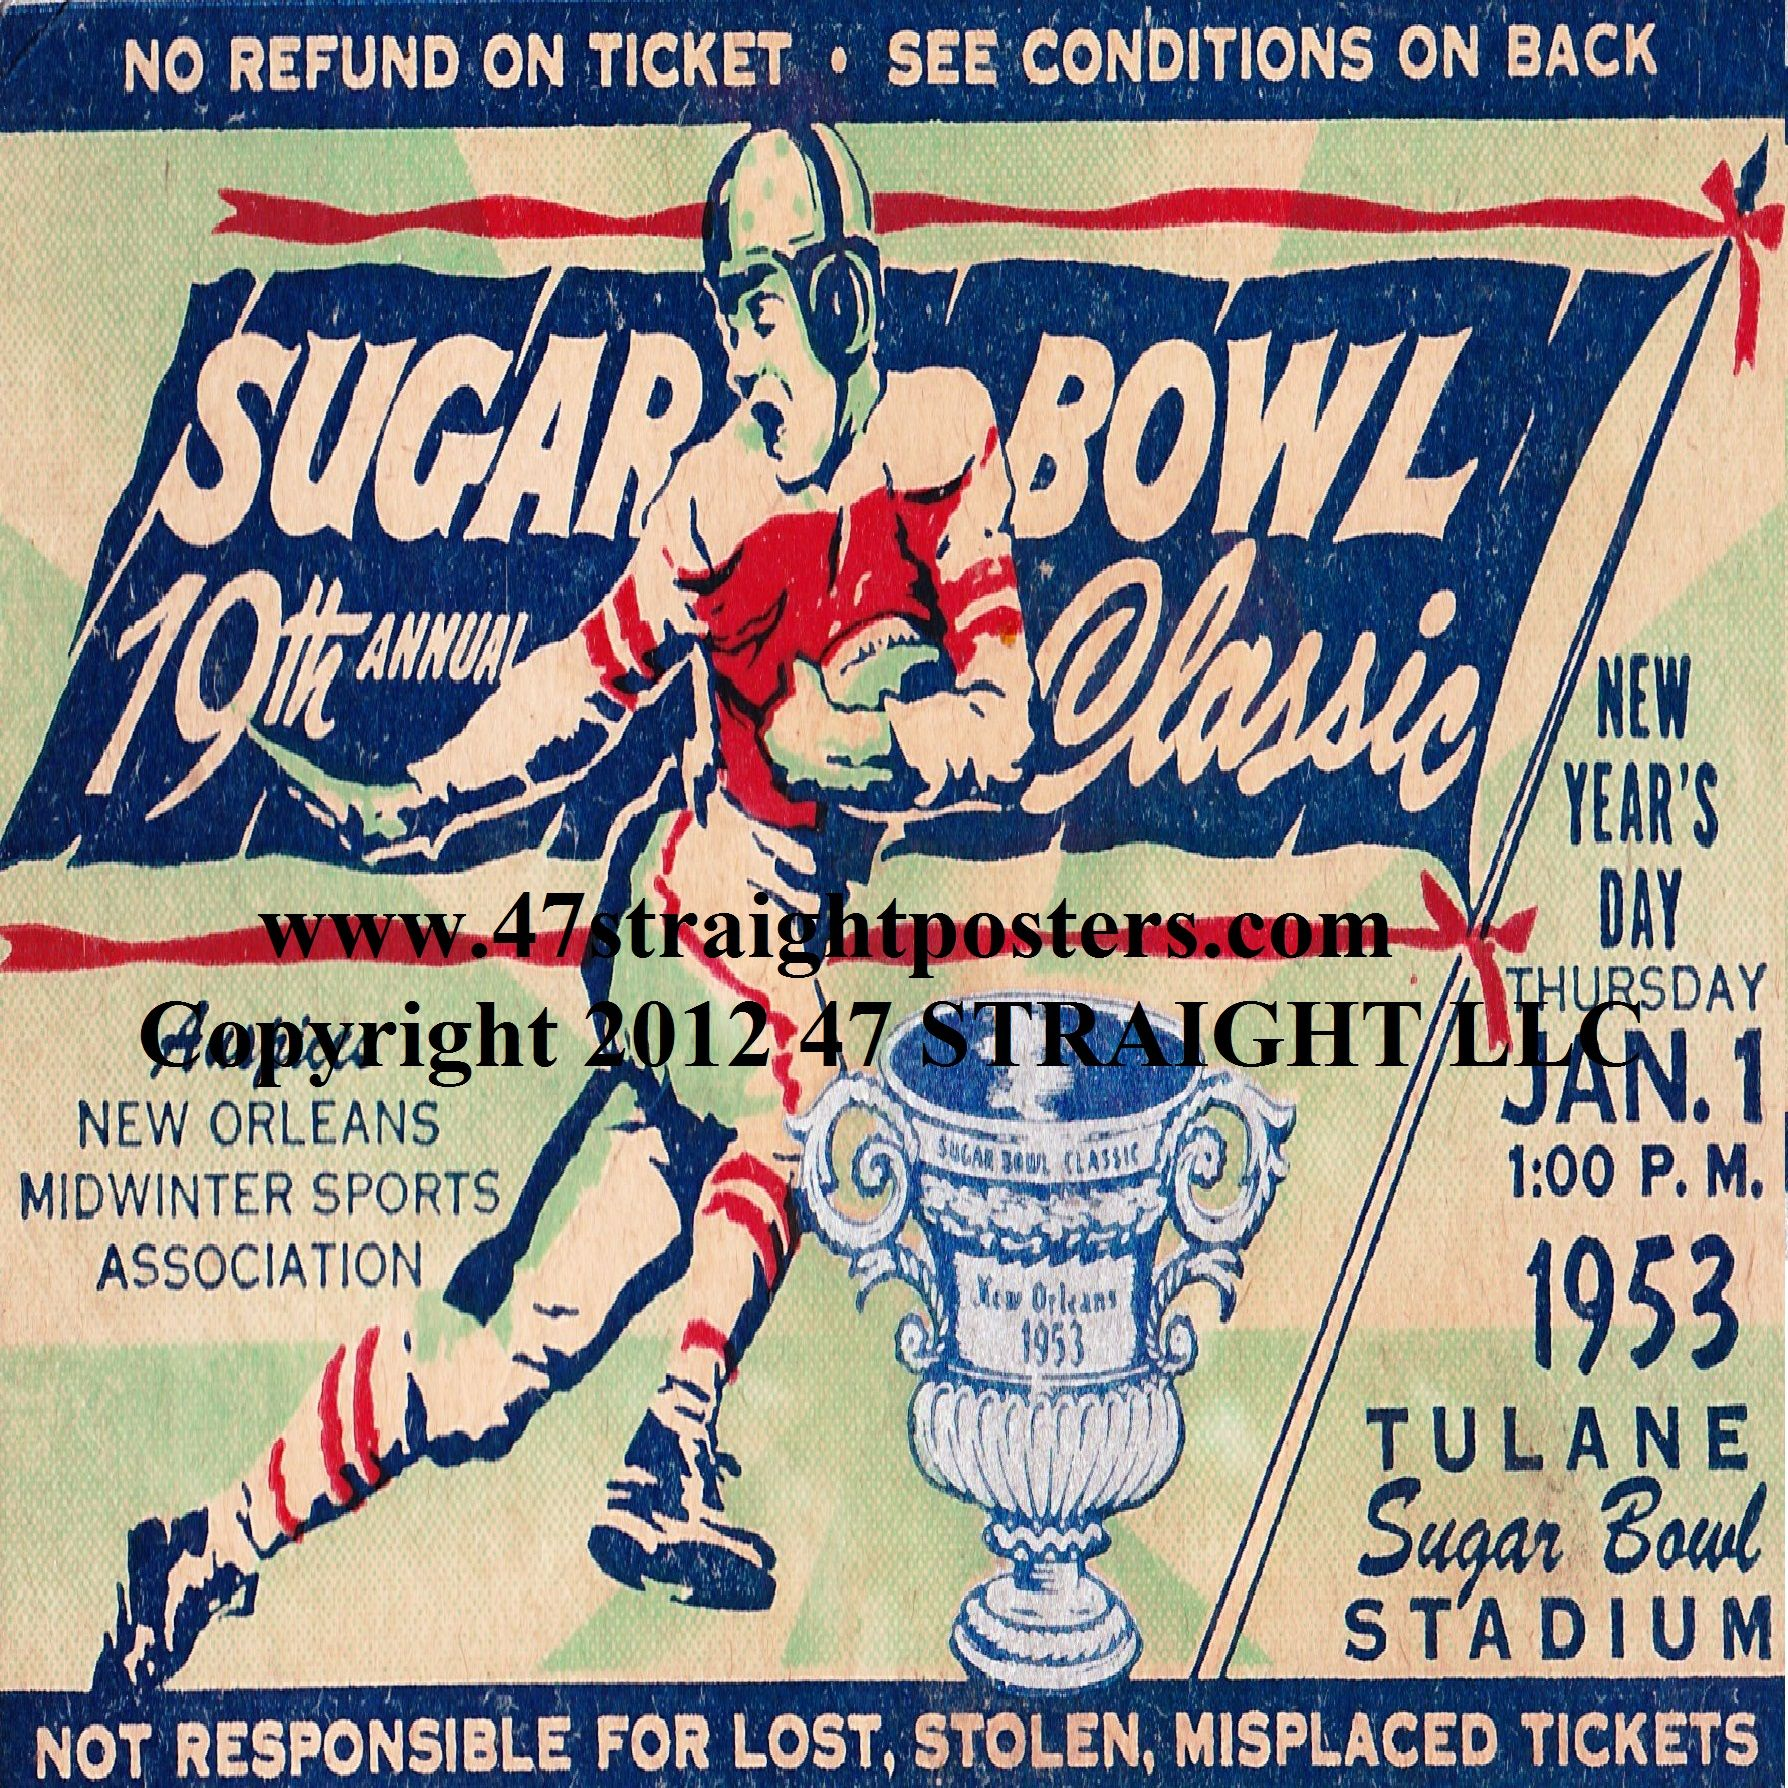 Tech won the National Title in 1952. Sugar Bowl